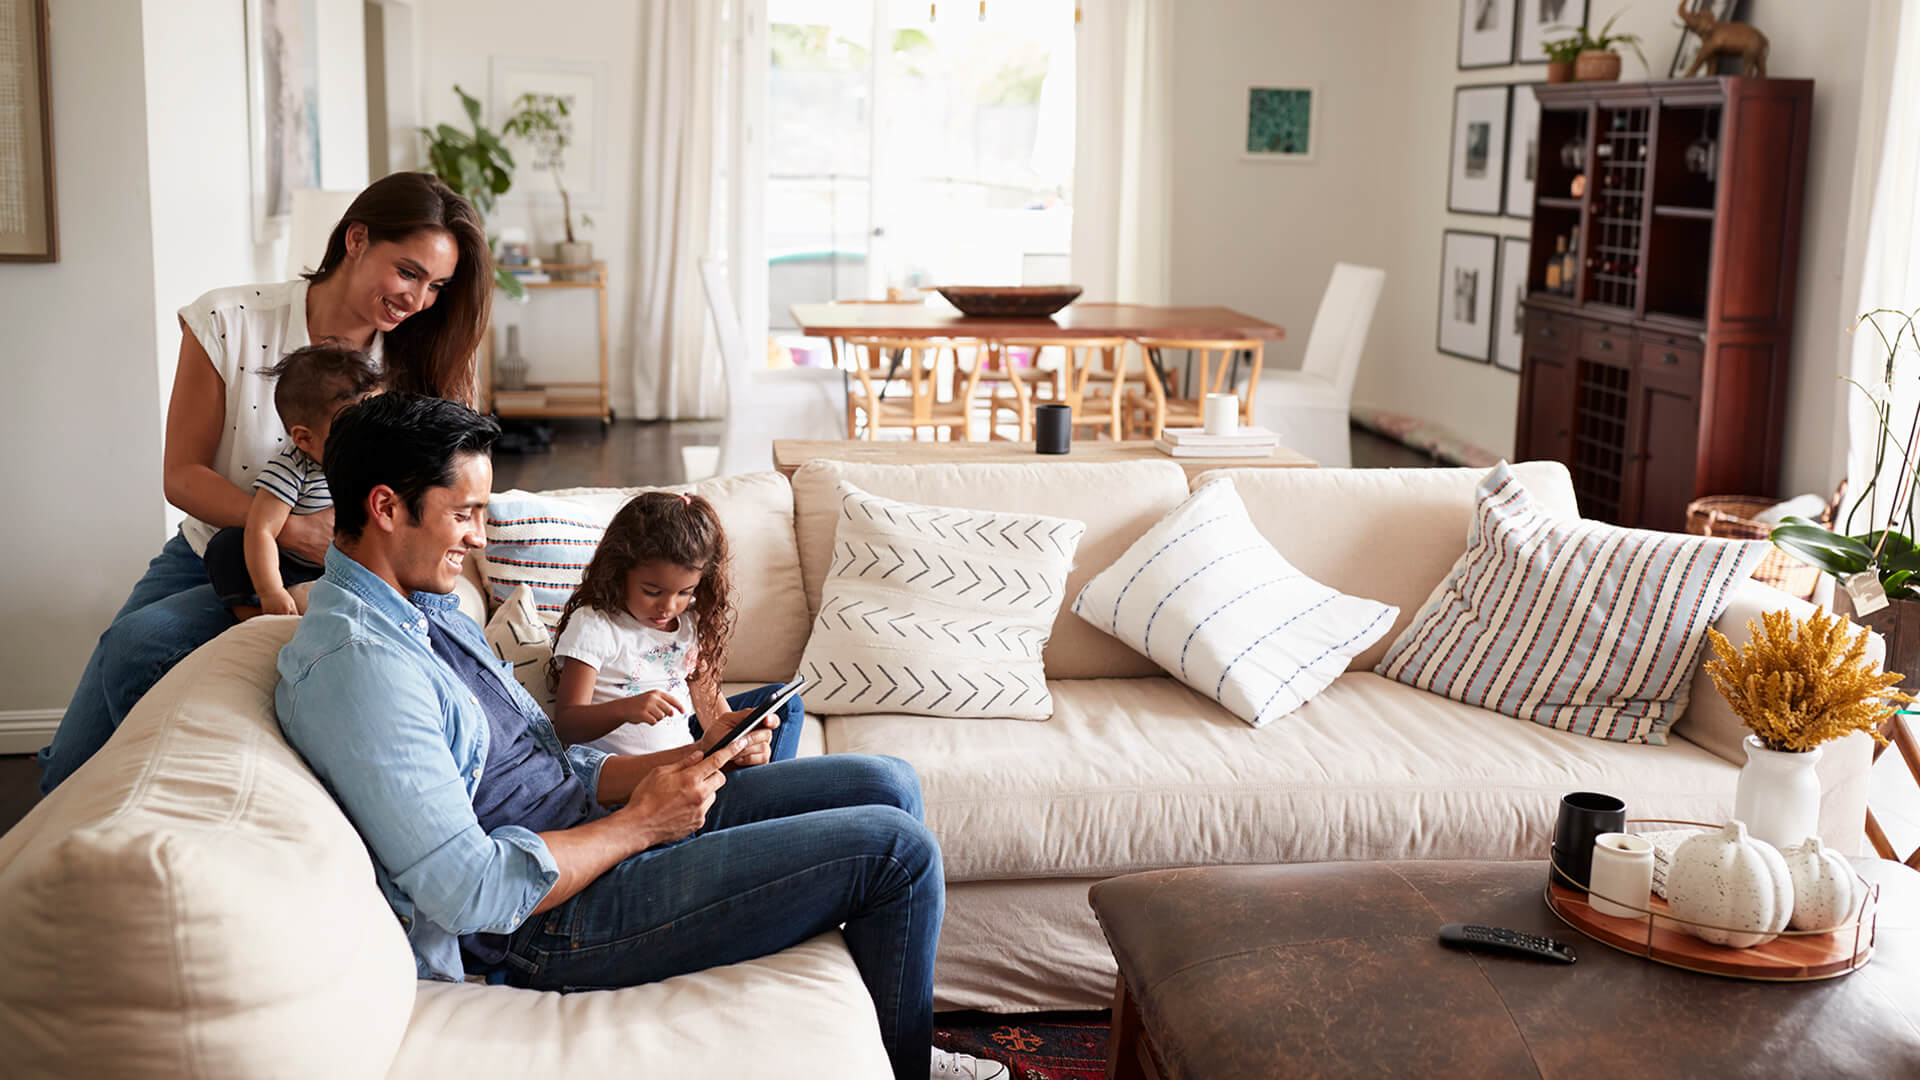 Smiling family gathered around a tablet in new home